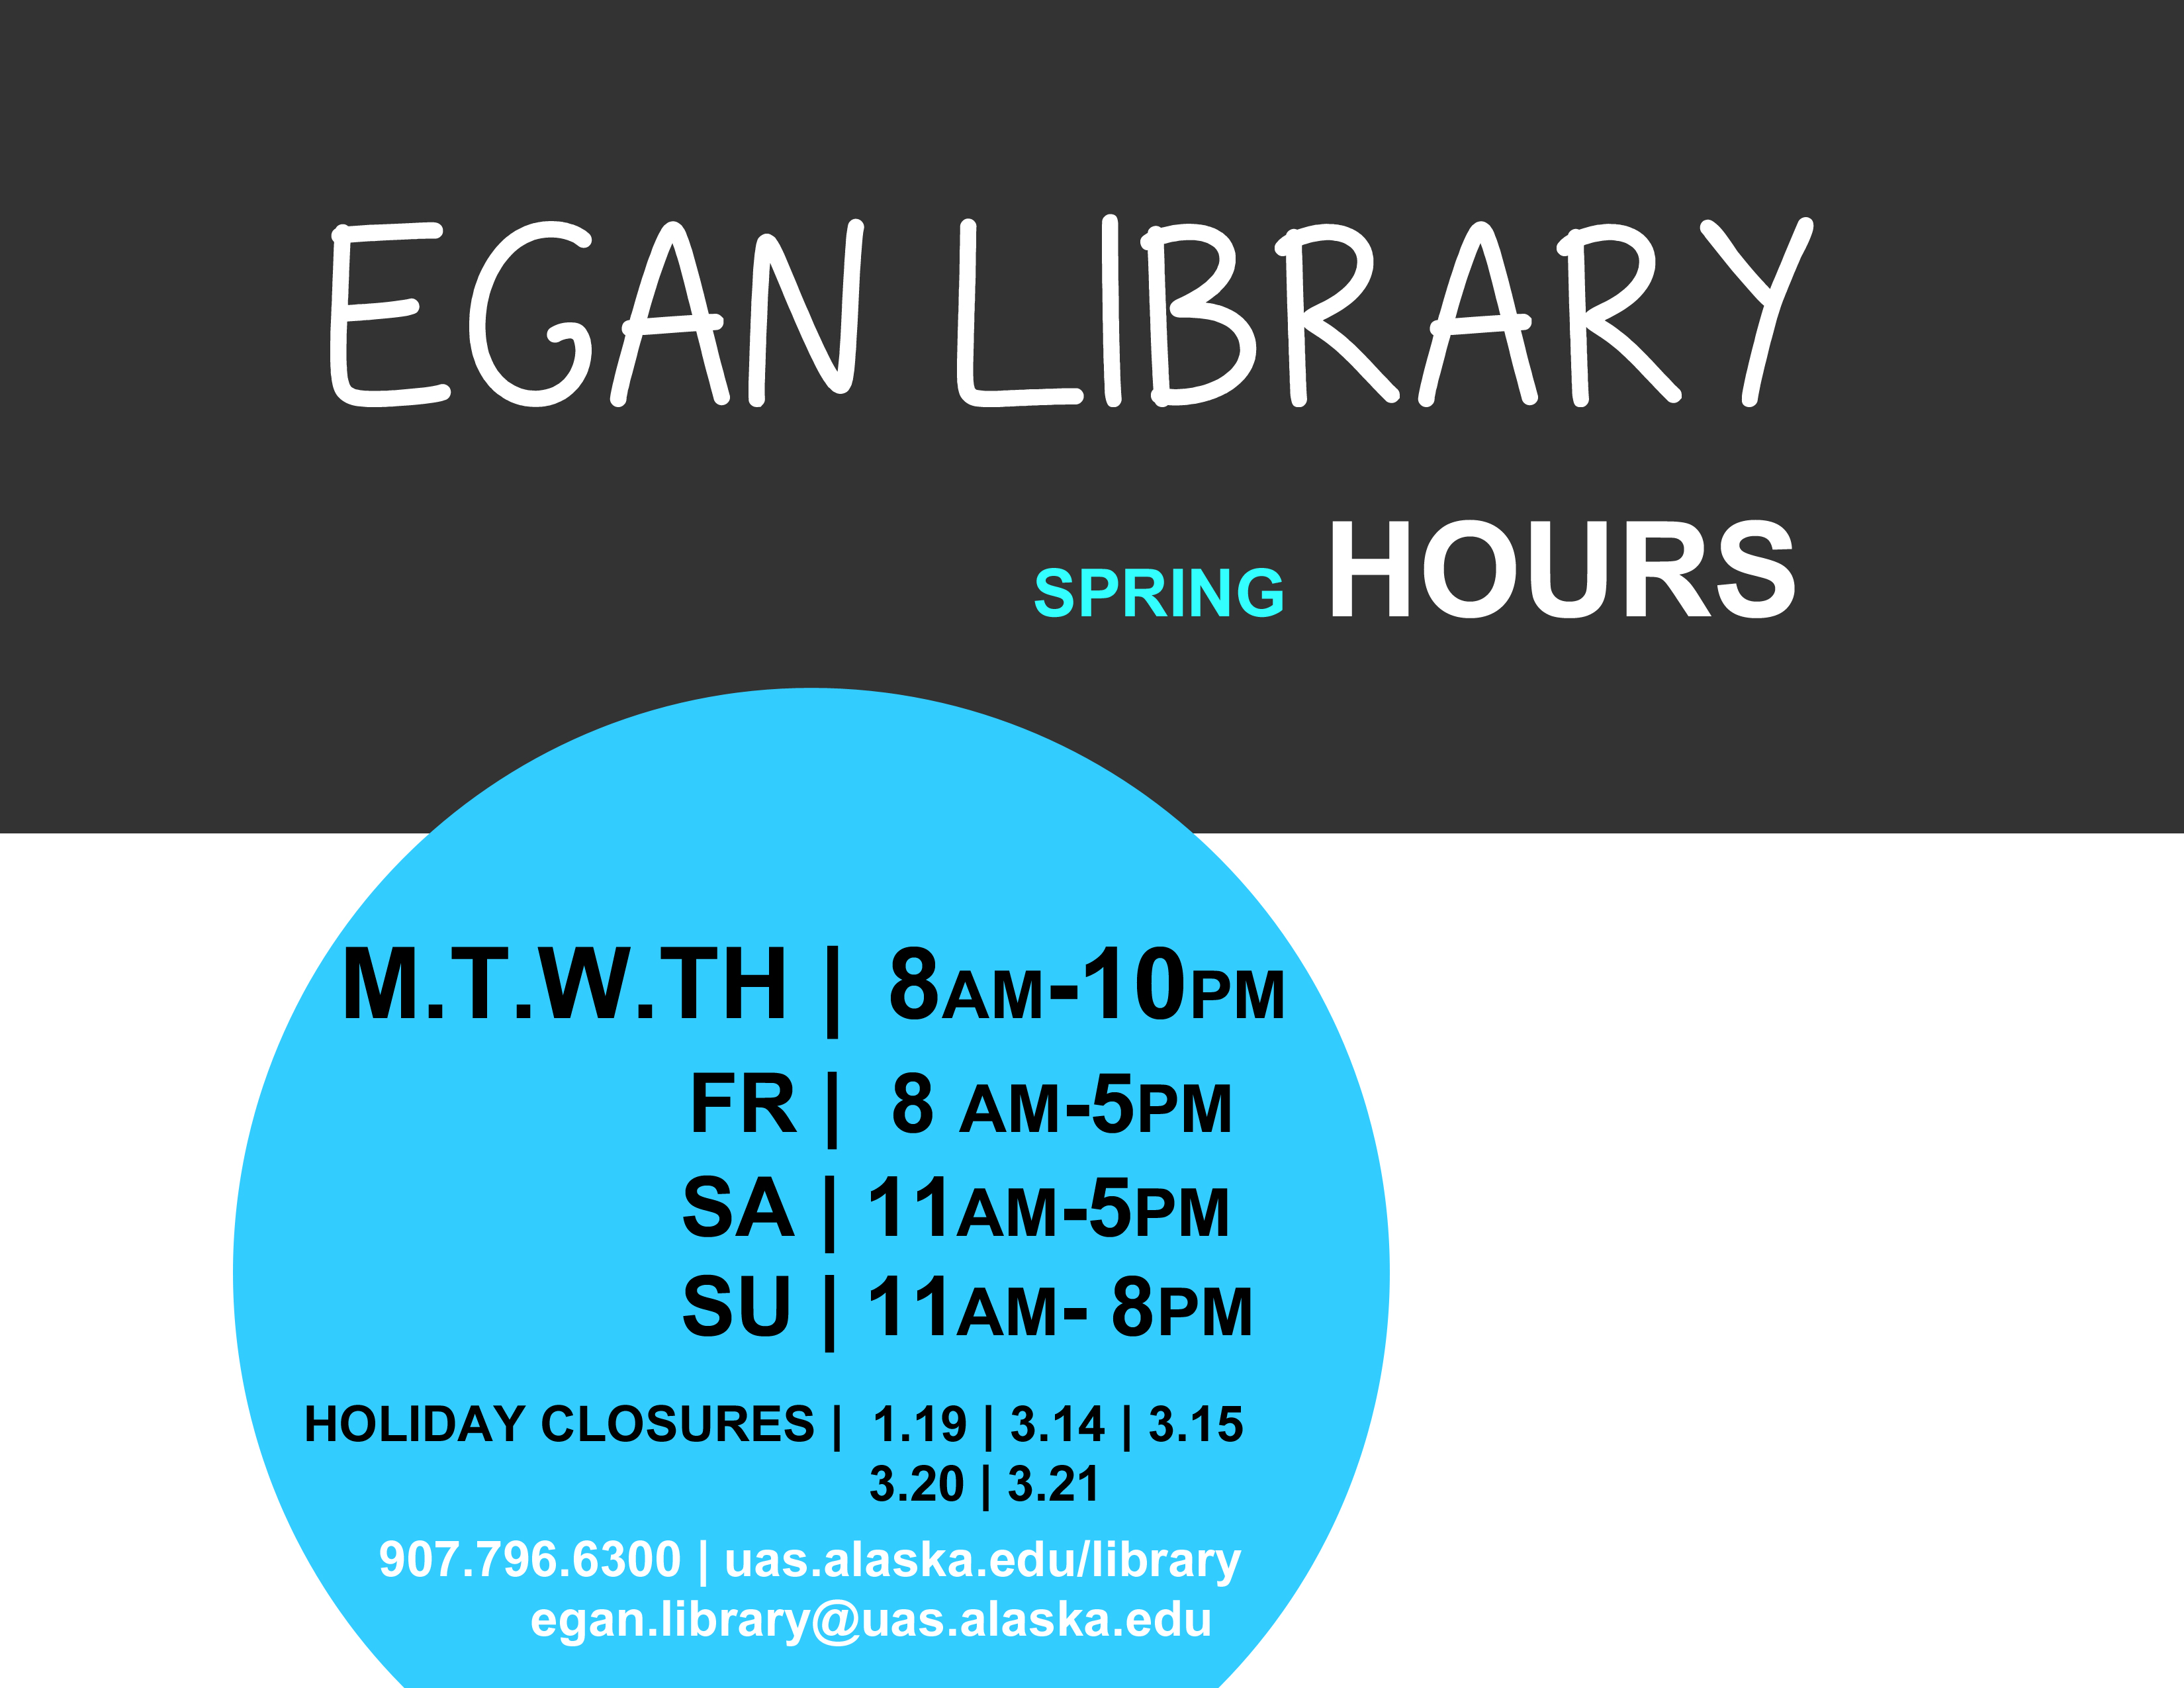 Advertising Hours Librarian Design Share